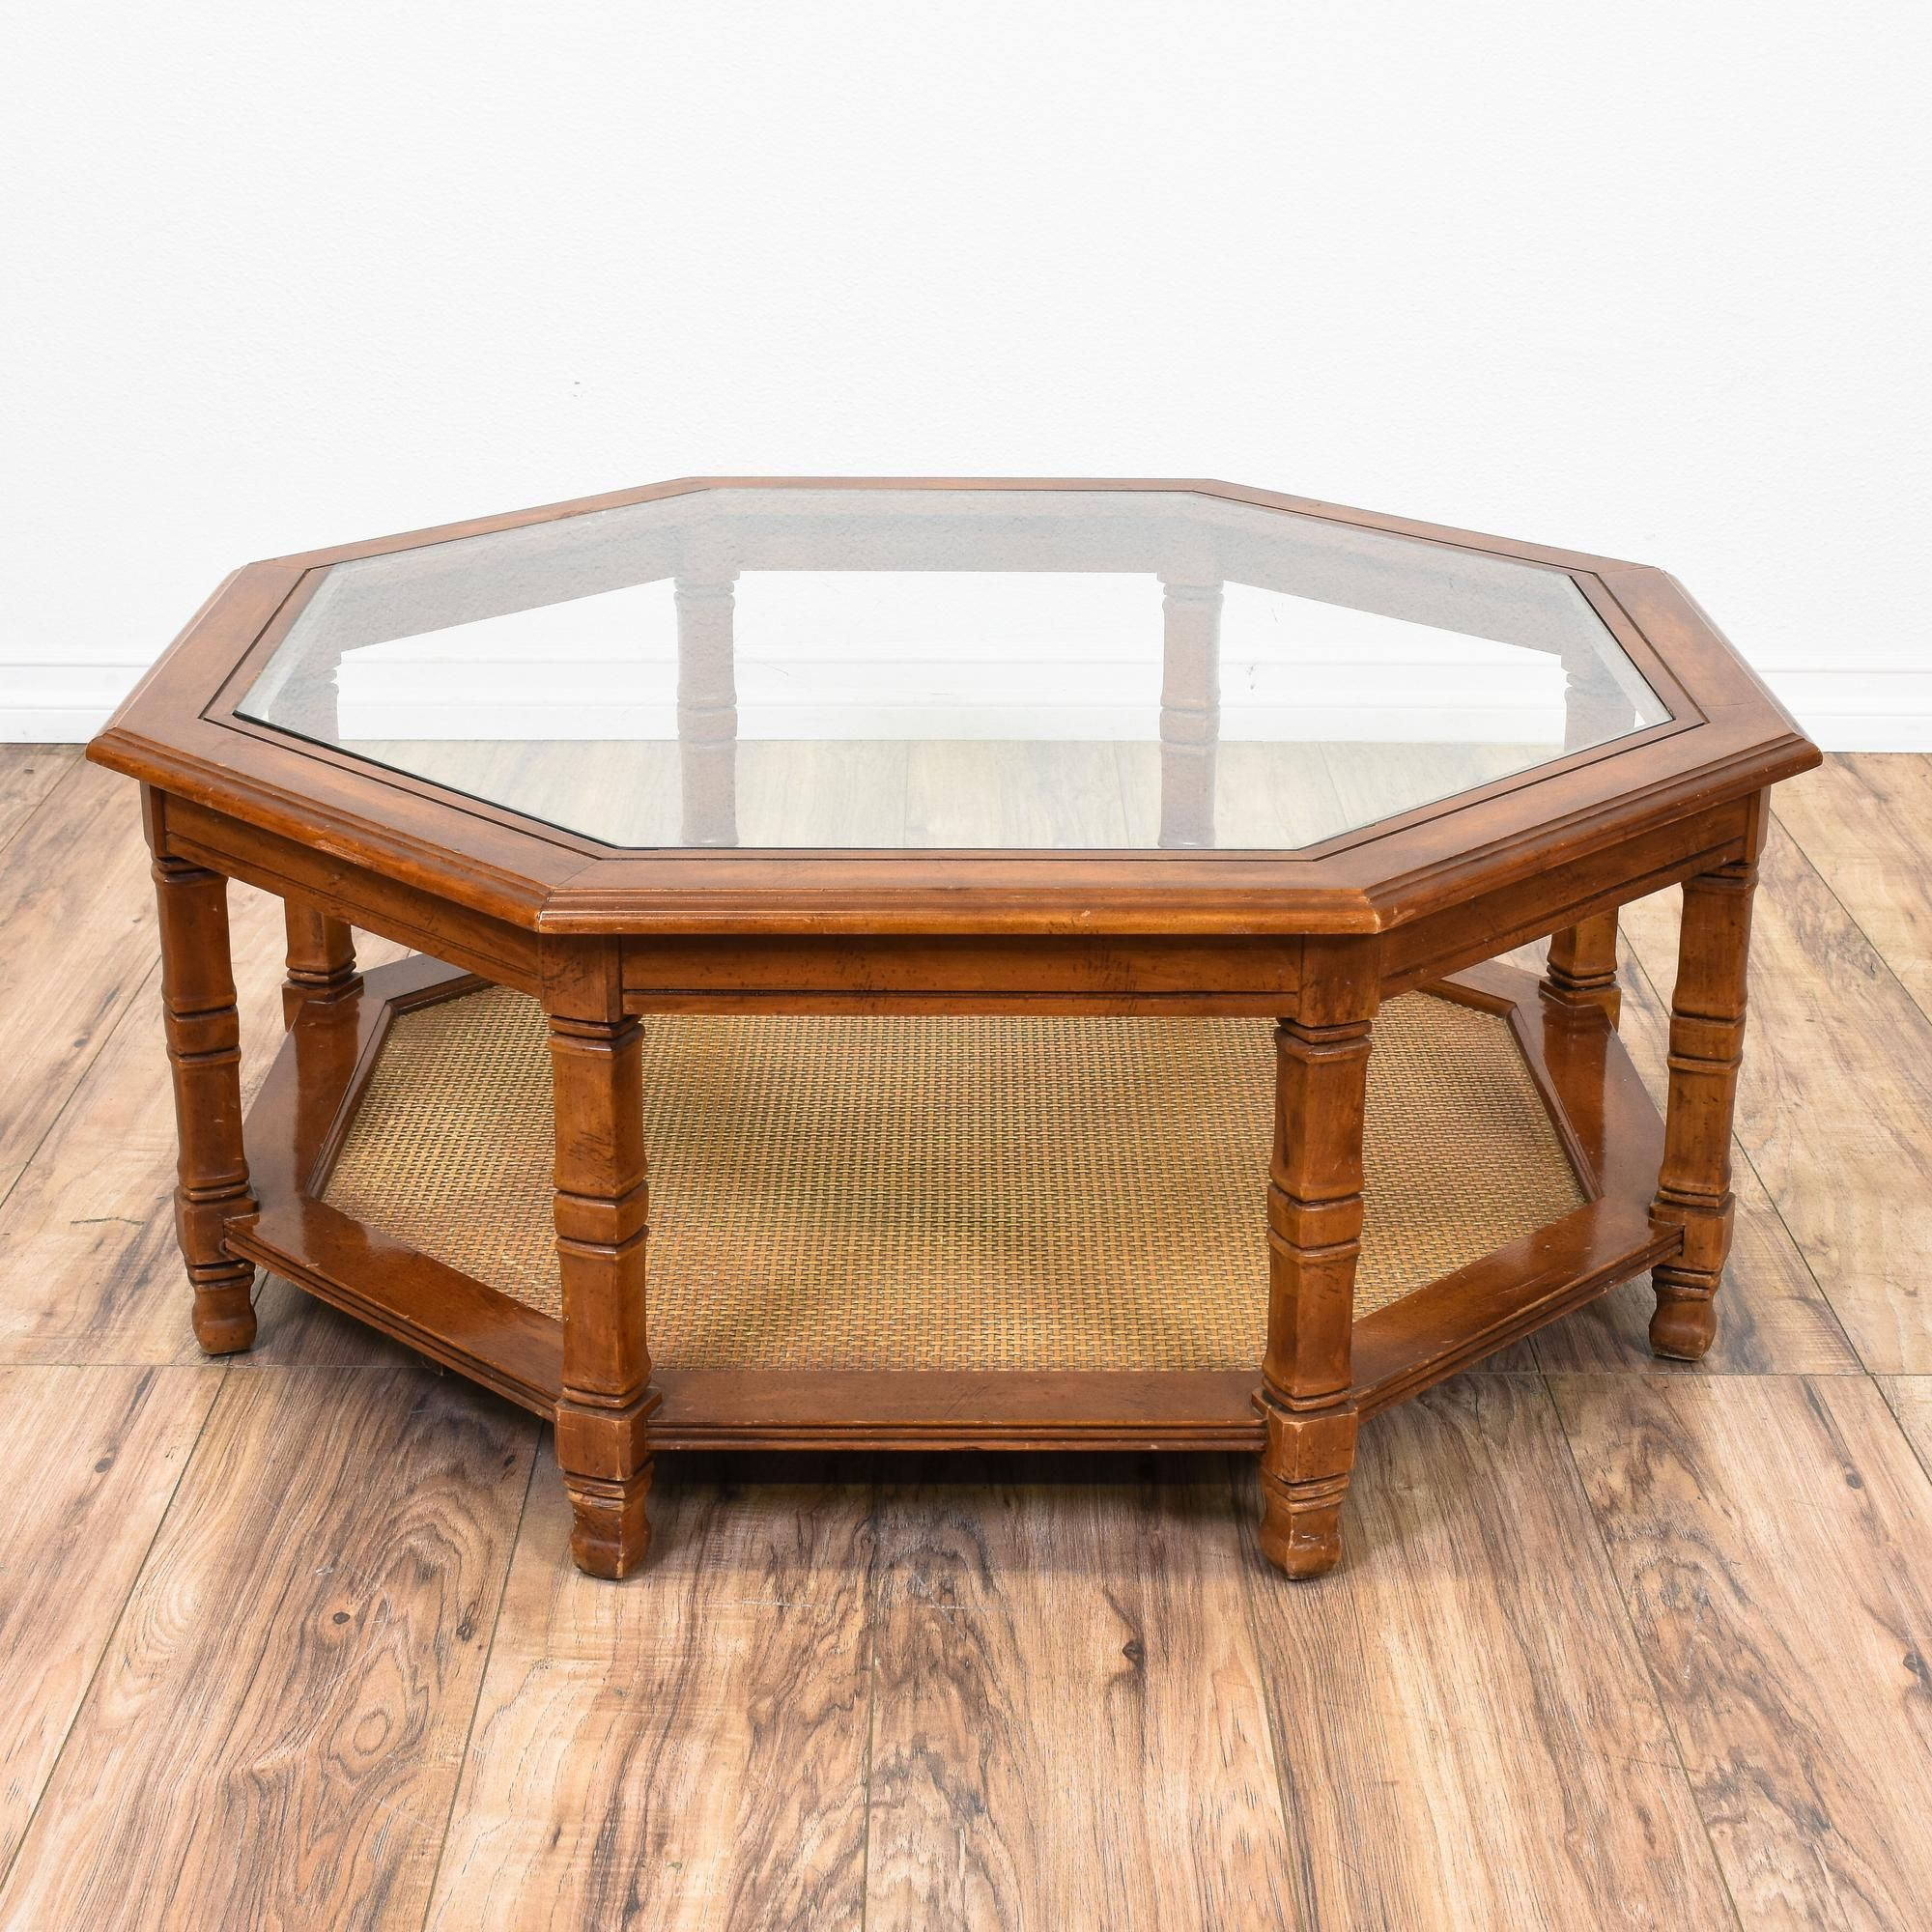 This Octagon Coffee Table Is Featured In A Solid Wood With A Glossy Cherry Finish This Large